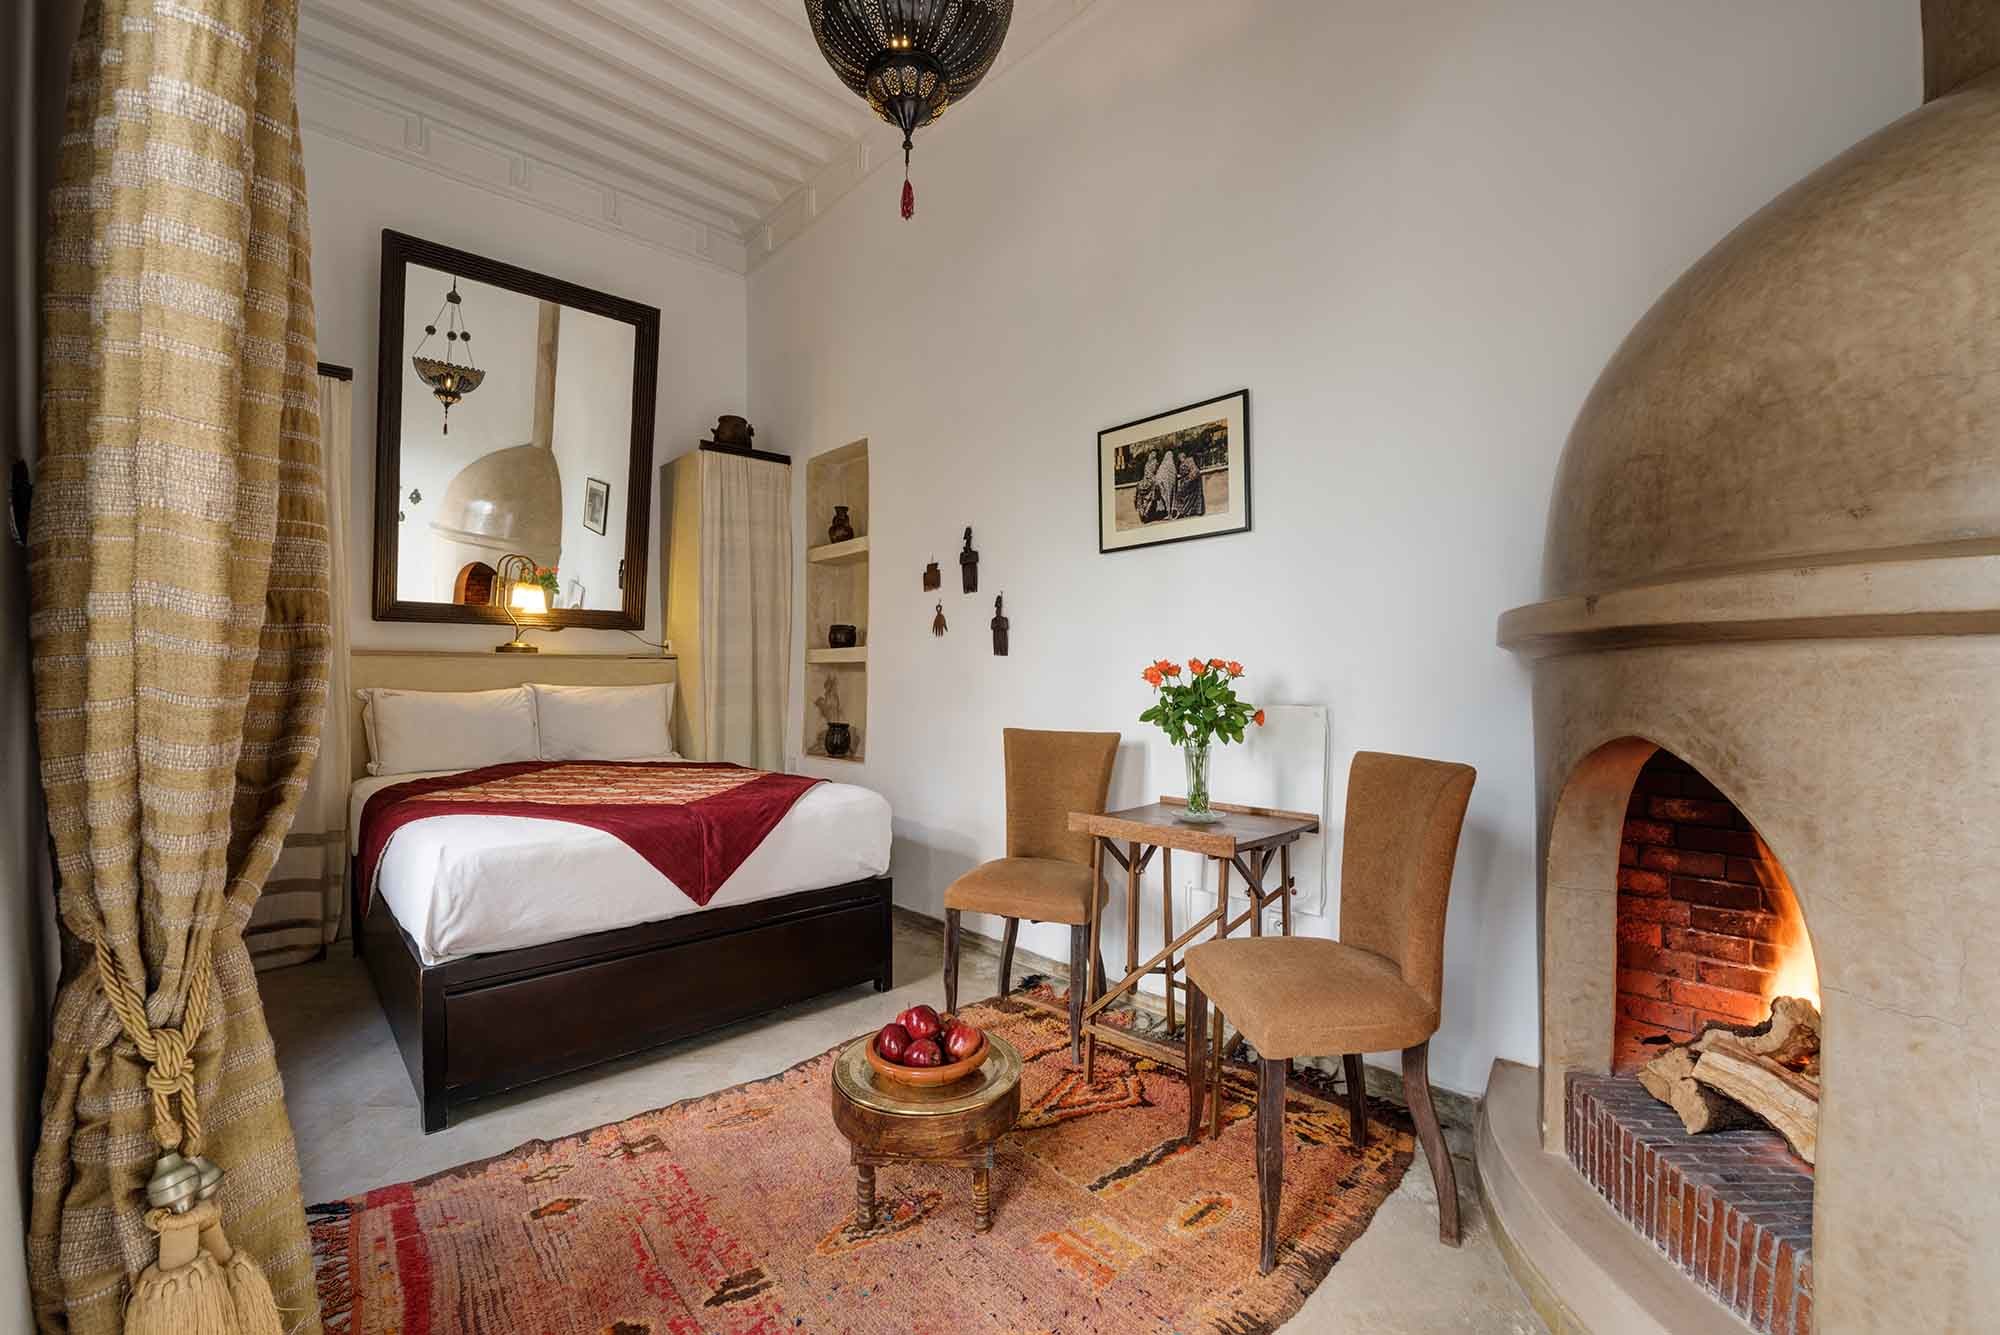 RIAD AZZAR GUEST HOUSE MARRAKECH ROOM